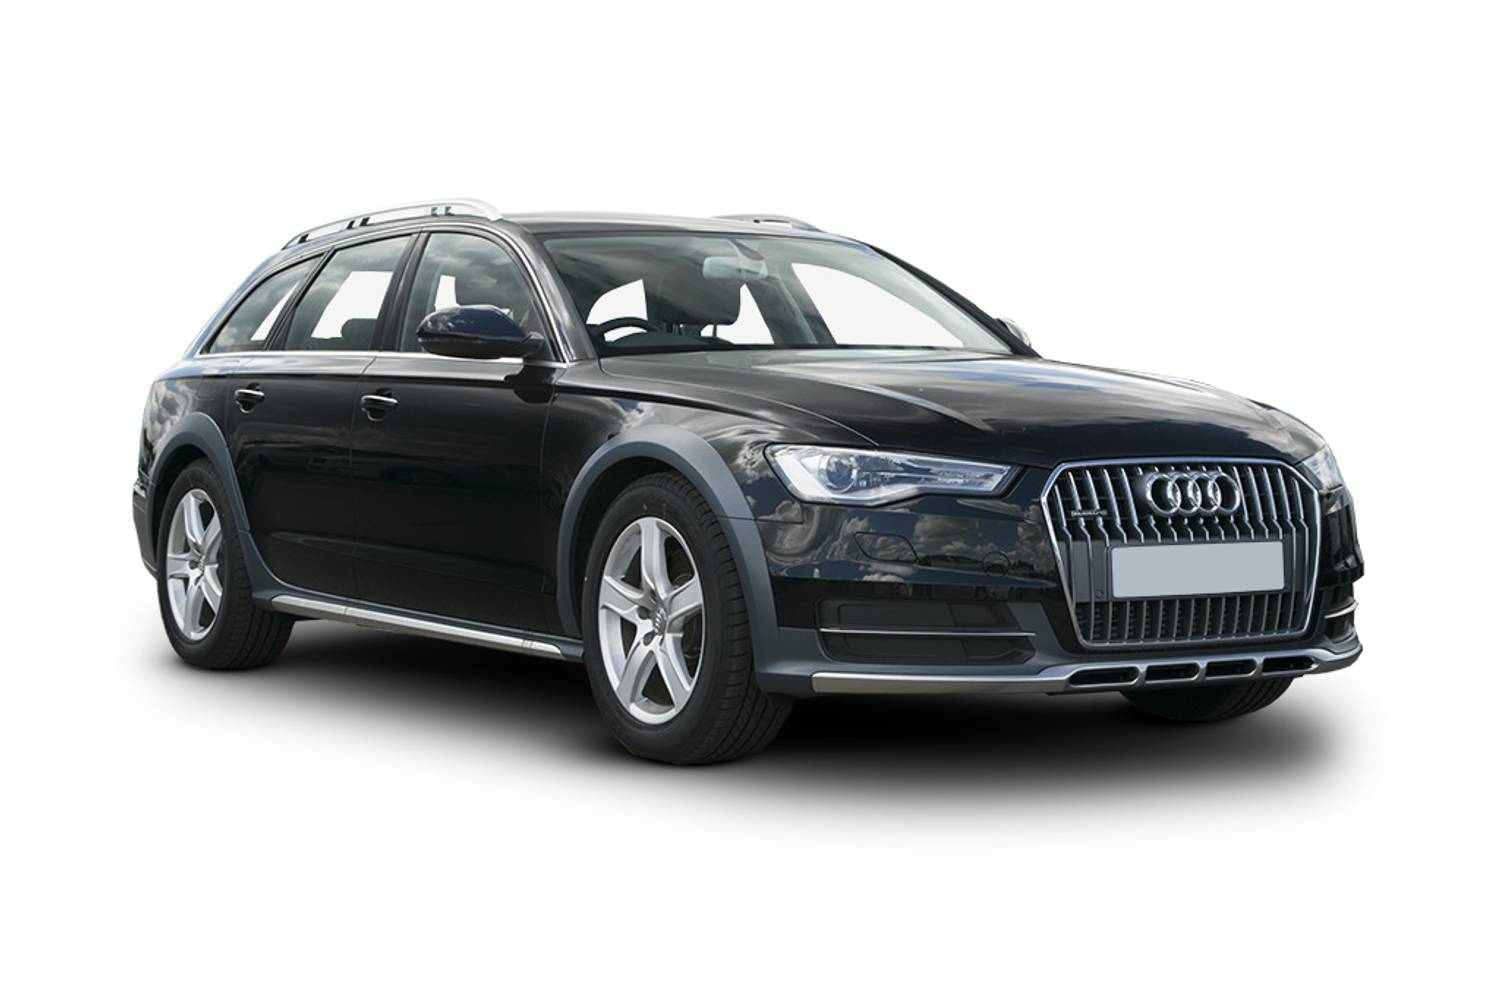 new audi a6 allroad diesel estate 3 0 tdi 218 ps quattro. Black Bedroom Furniture Sets. Home Design Ideas